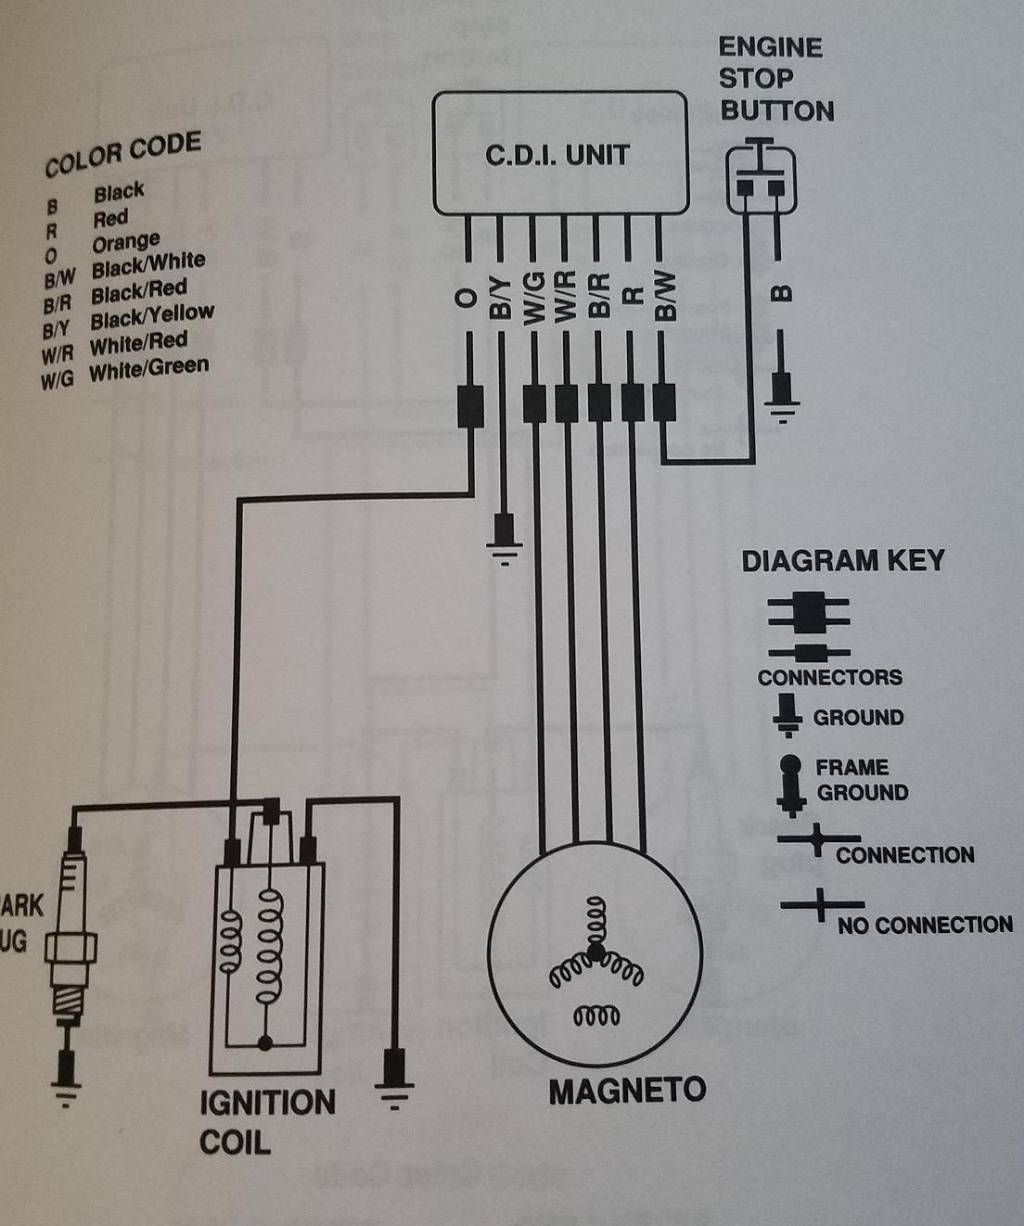 Wiring Diagram Likewise Cdi Ignition Wiring Diagram Together With